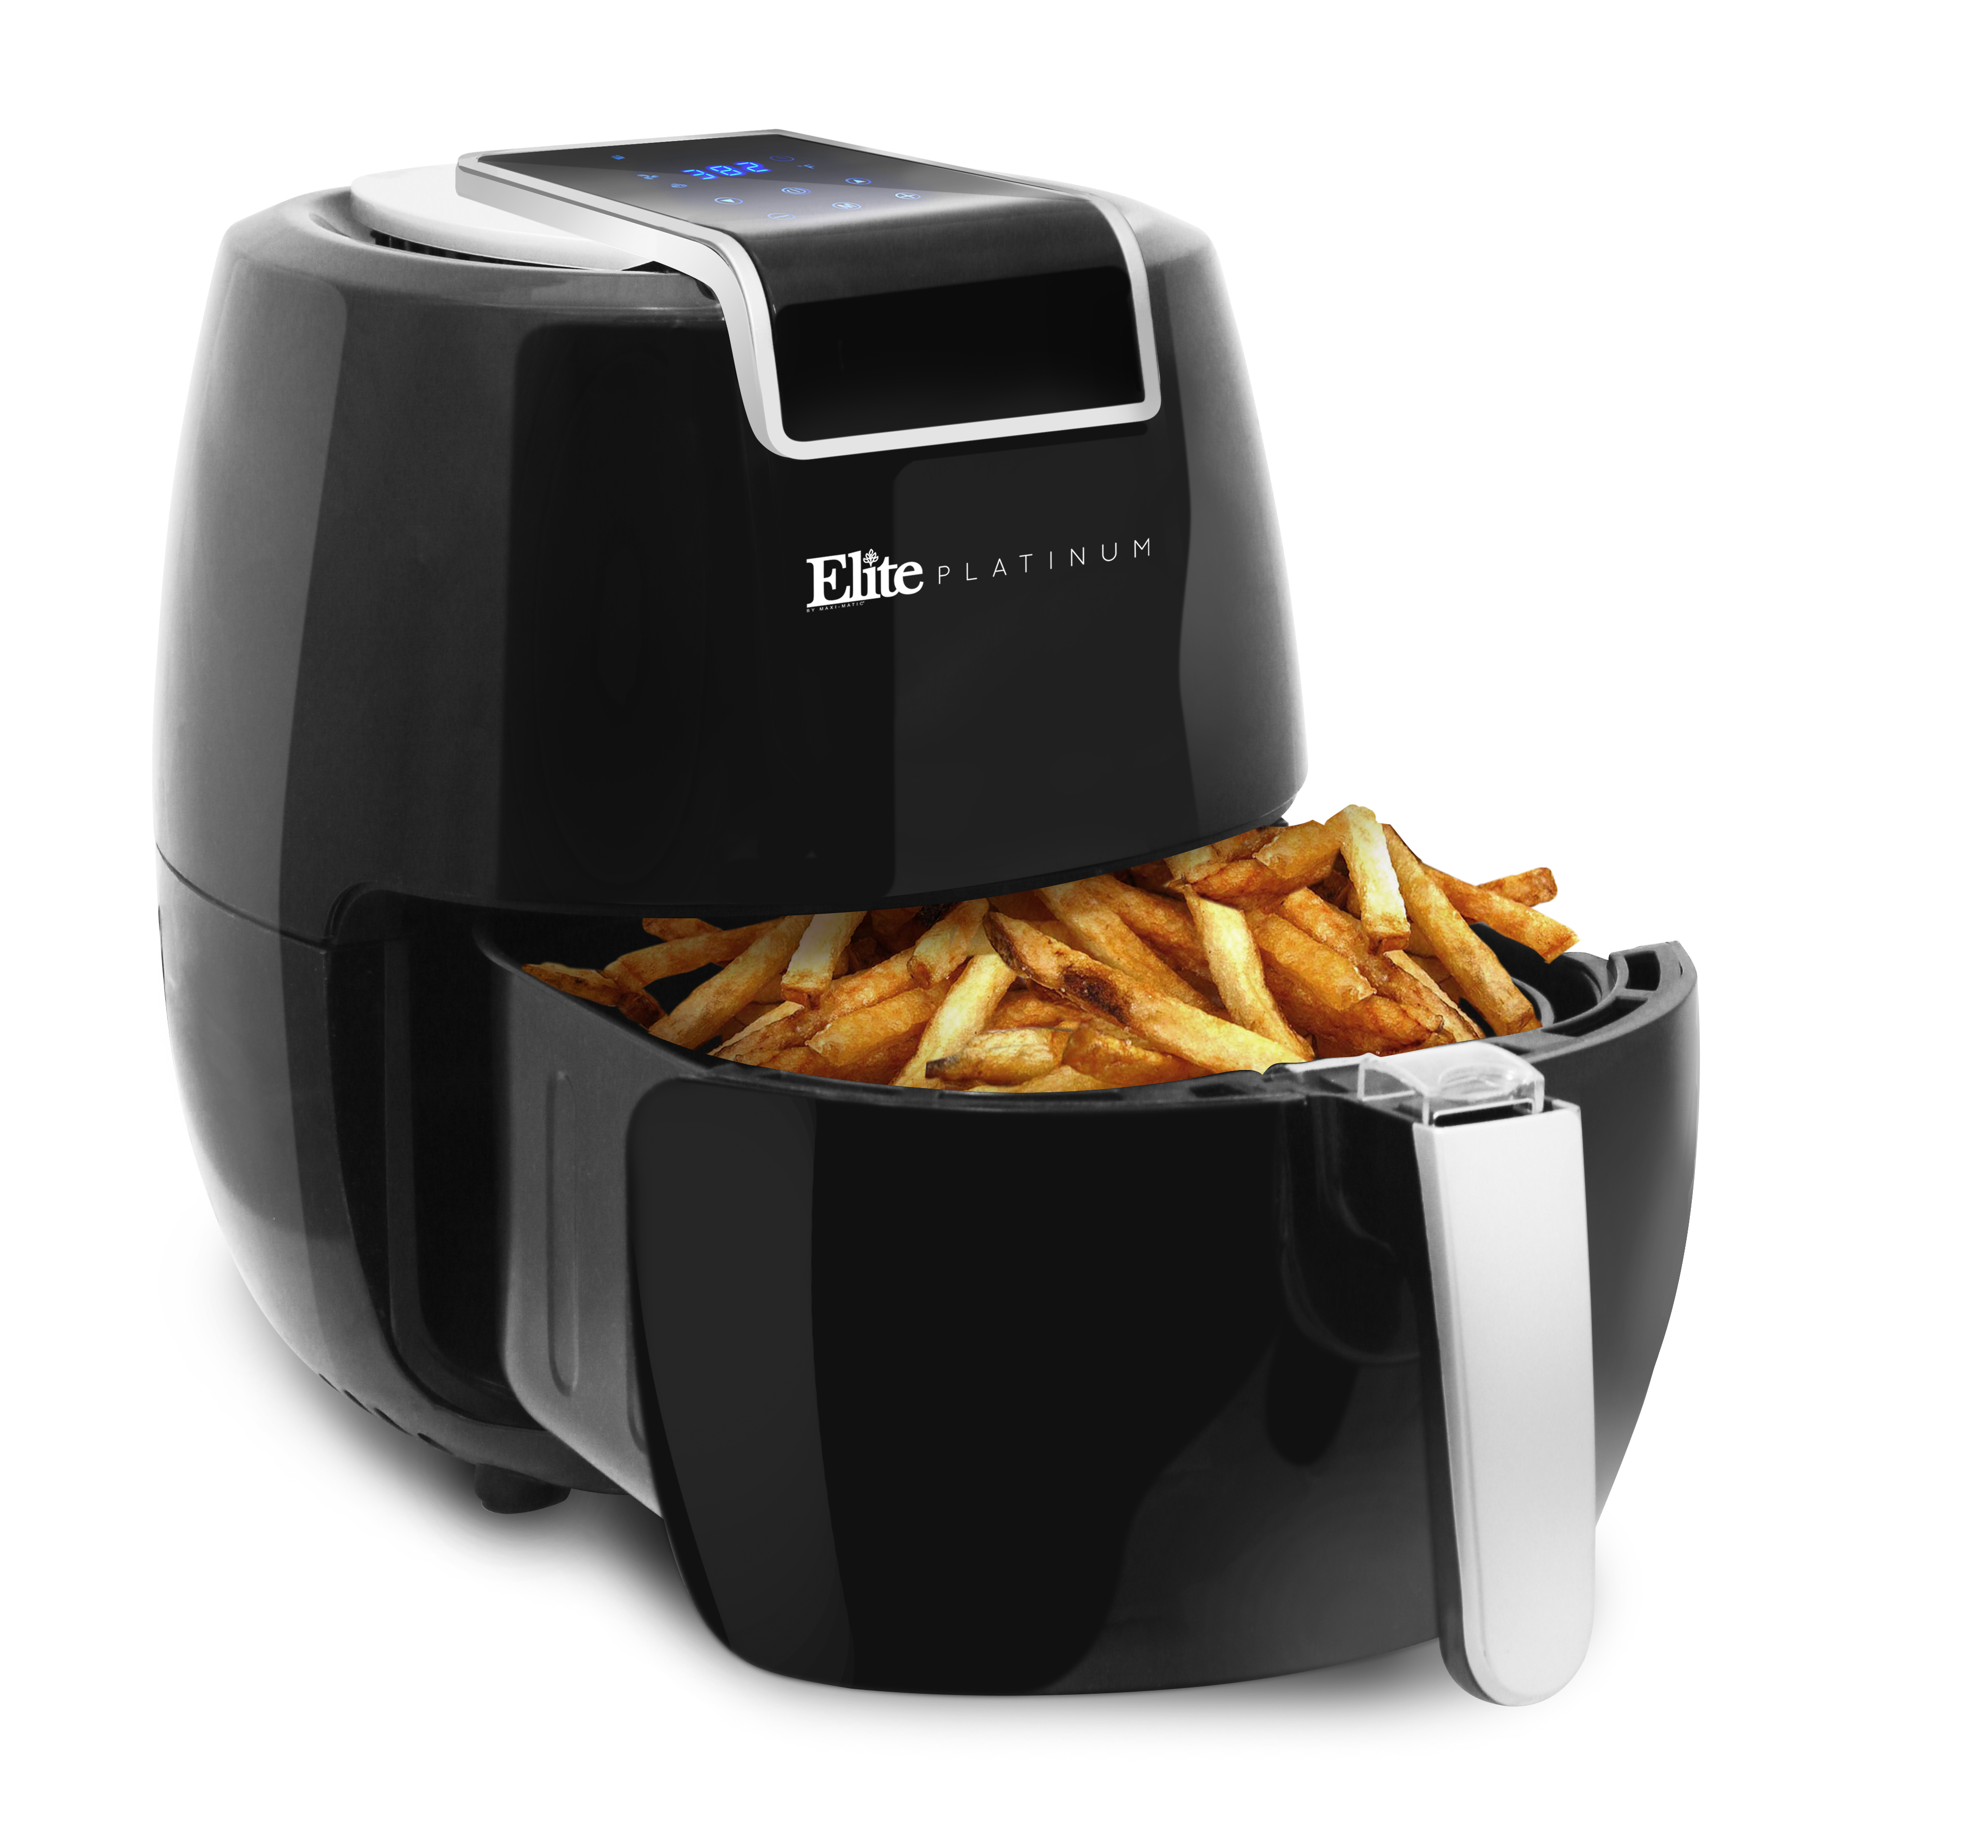 Elite Platinum 5.6-Quart Air Fryer